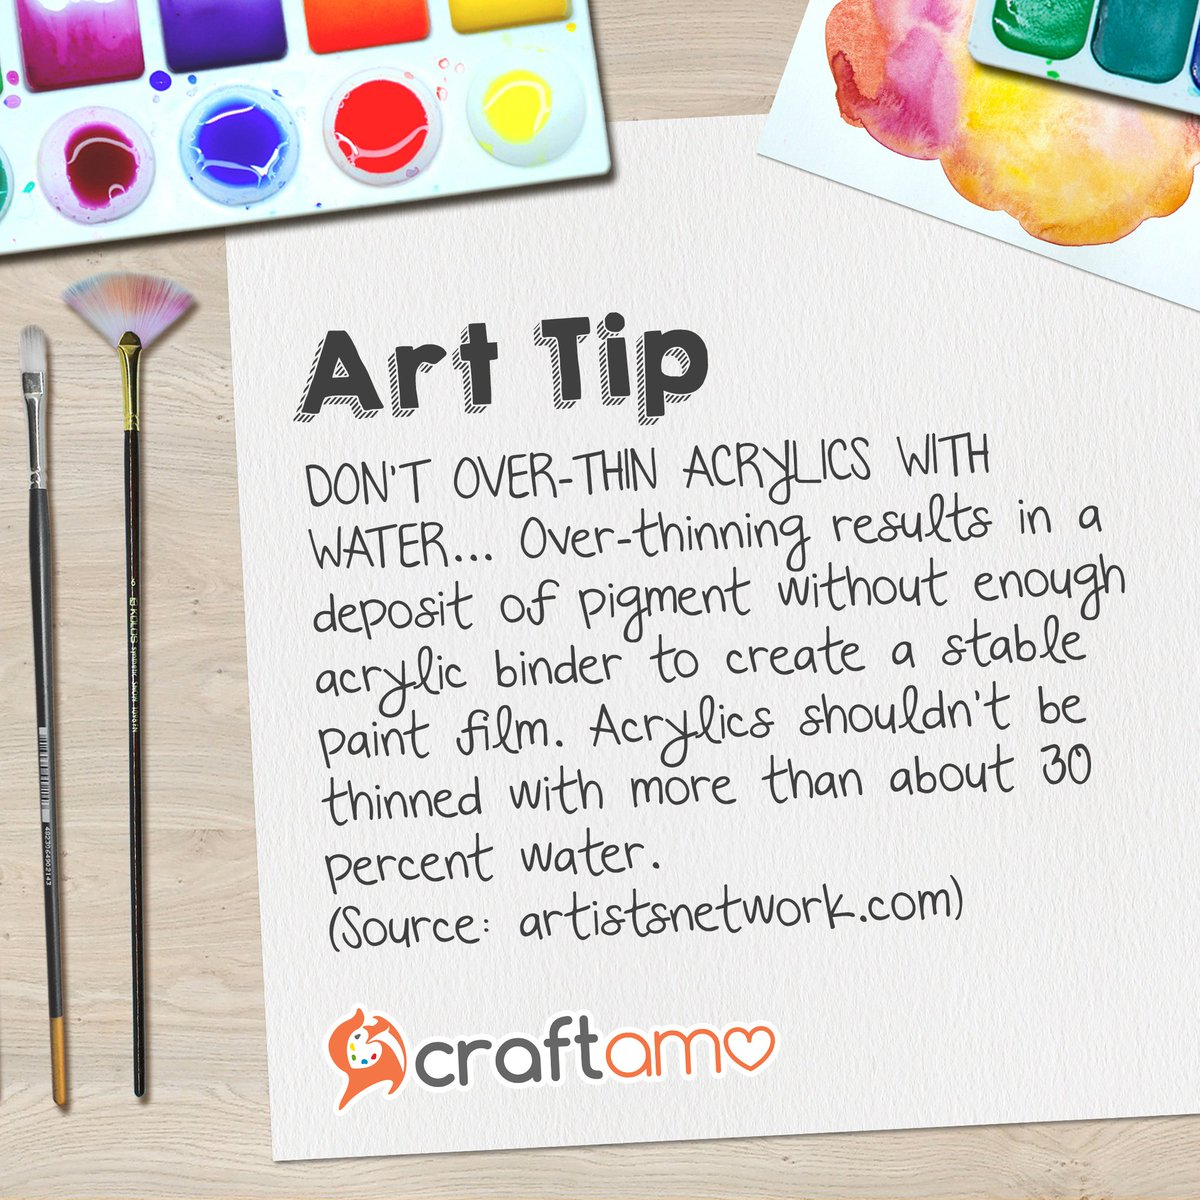 I guess it's true that too much of anything is bad.  #craftamo #arttips #jointhediscussion<br>http://pic.twitter.com/iw3cgbO23B